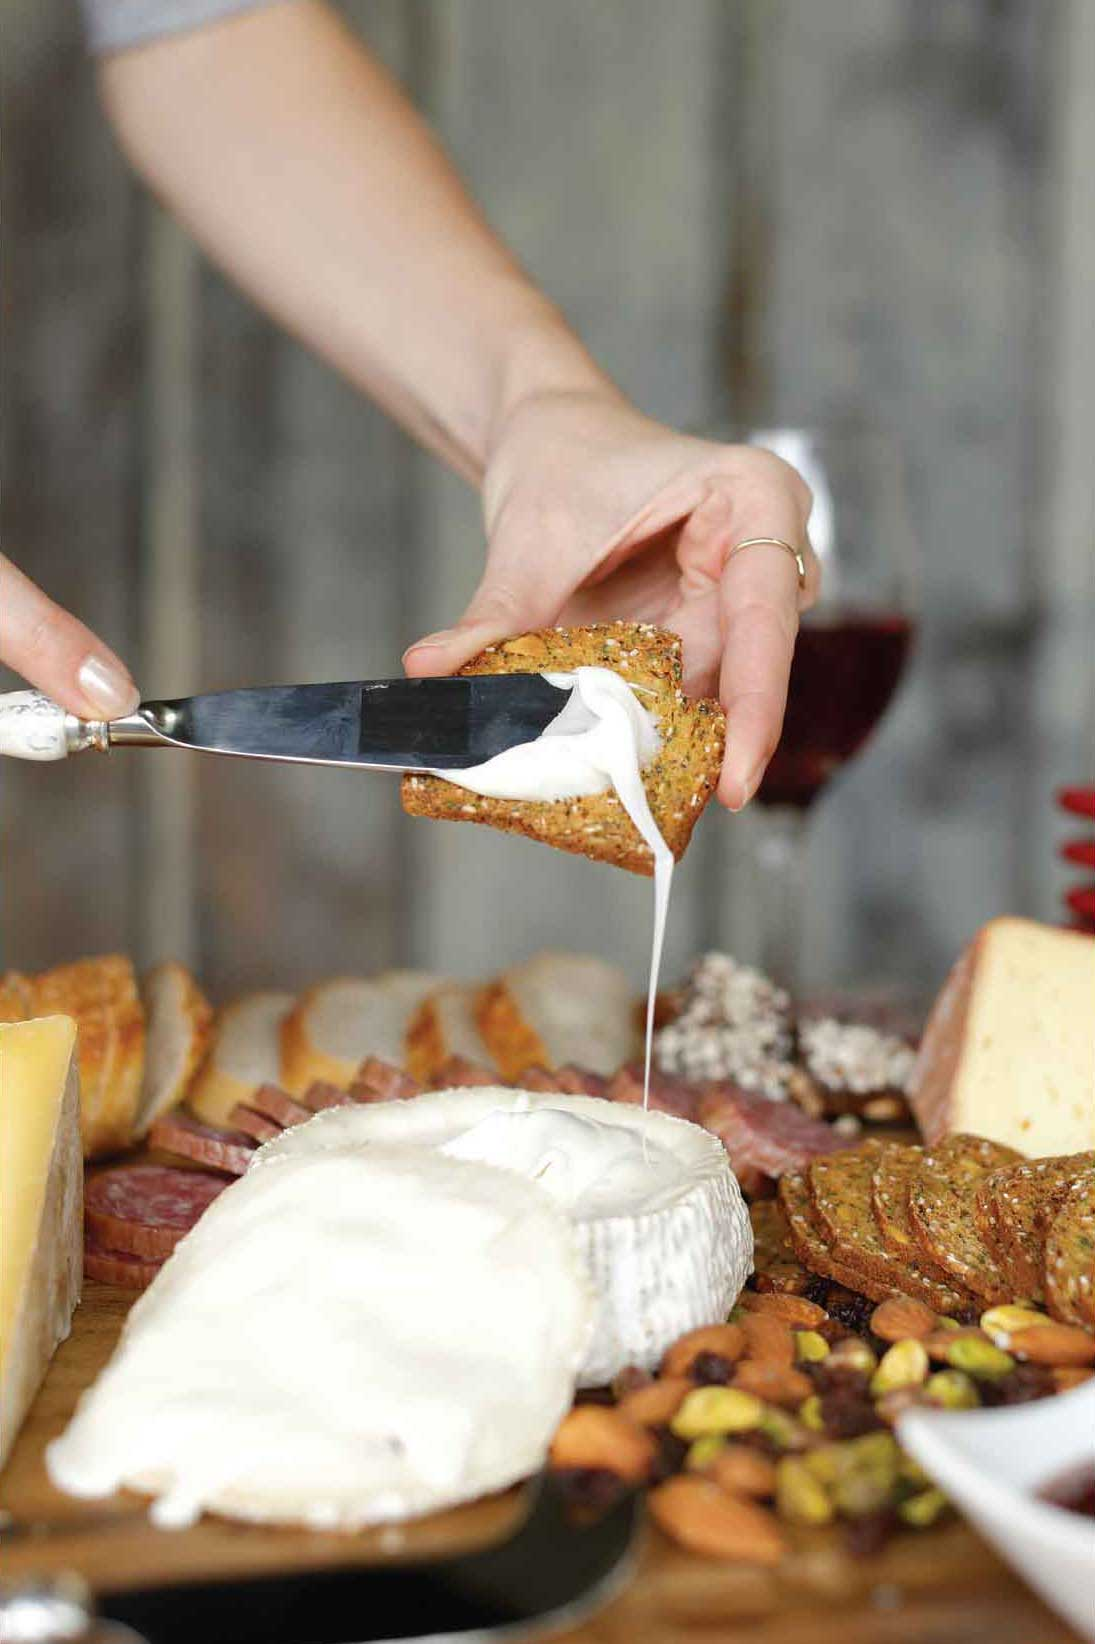 Theresau0027s signature touch? Mixing her sources. The cheese aficionado loves to assemble plates with cheese from cowu0027s milk goatu0027s milk and sheepu0027s milk. & Winter 2016-17 | creating the perfect holiday CHEESE PLATTER